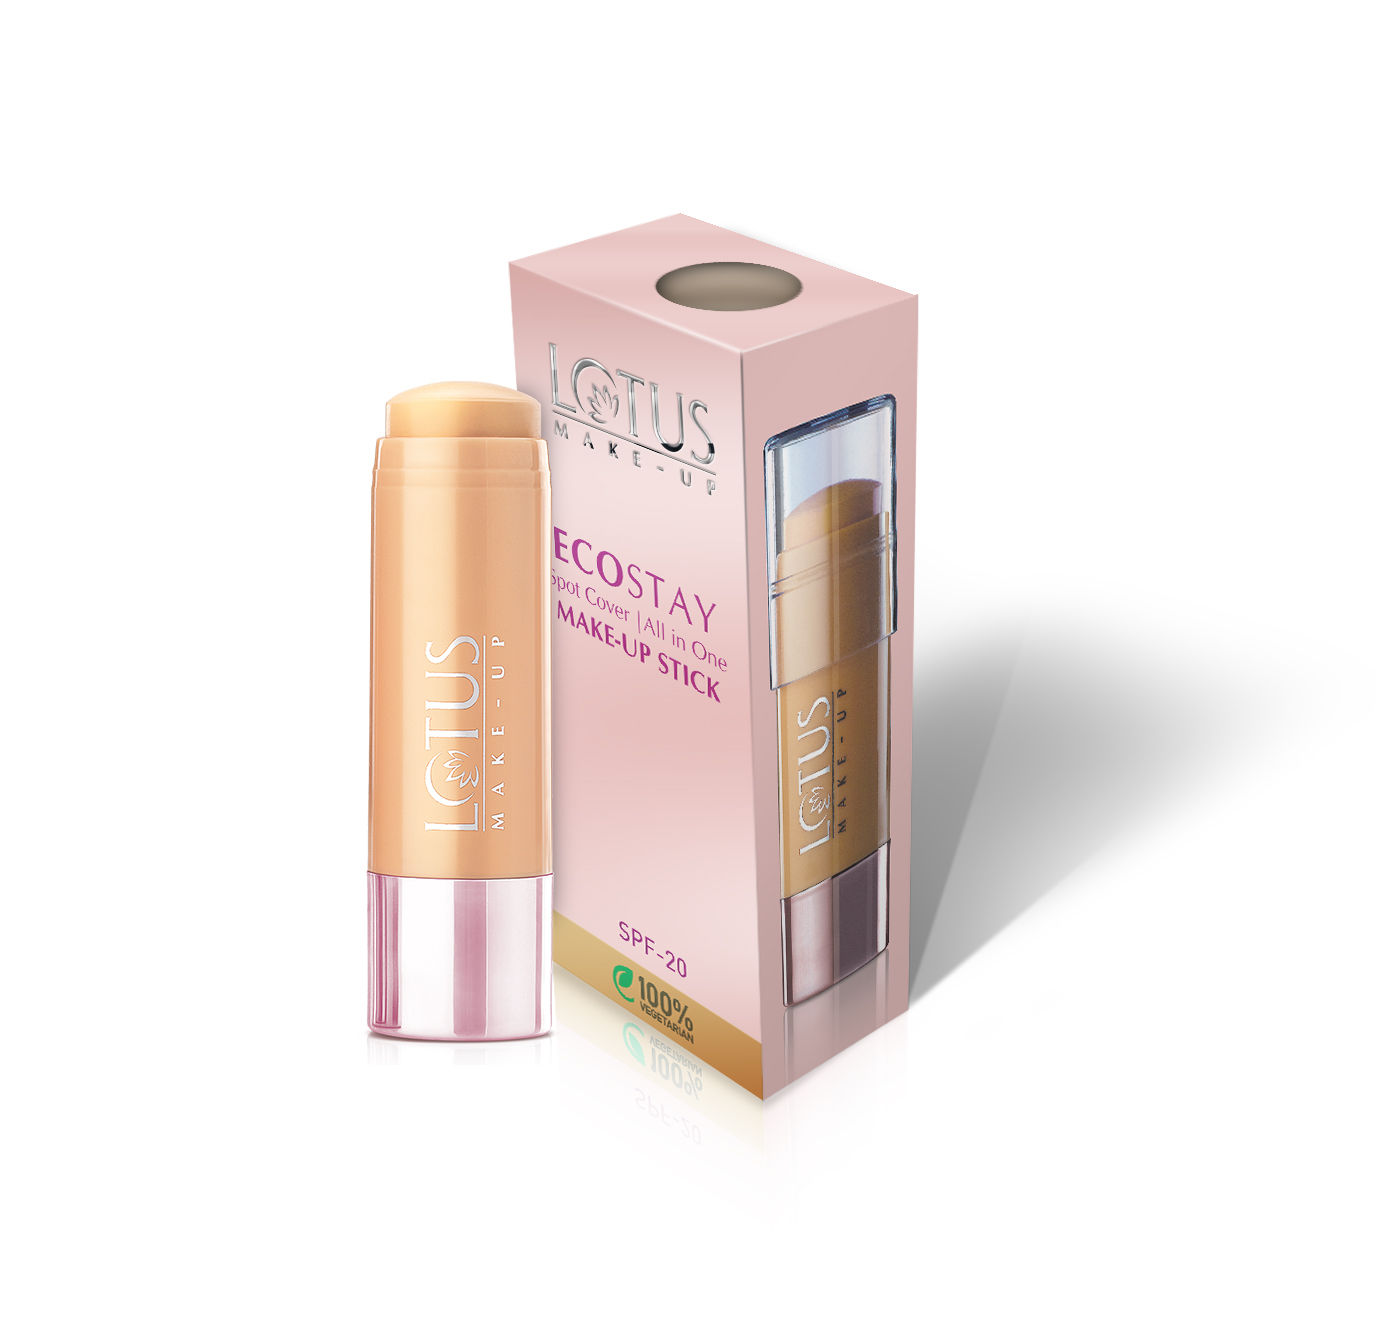 Lotus Make-Up Ecostay Spot Cover All-in-One Make-Up Stick SPF20 - Rich Shell